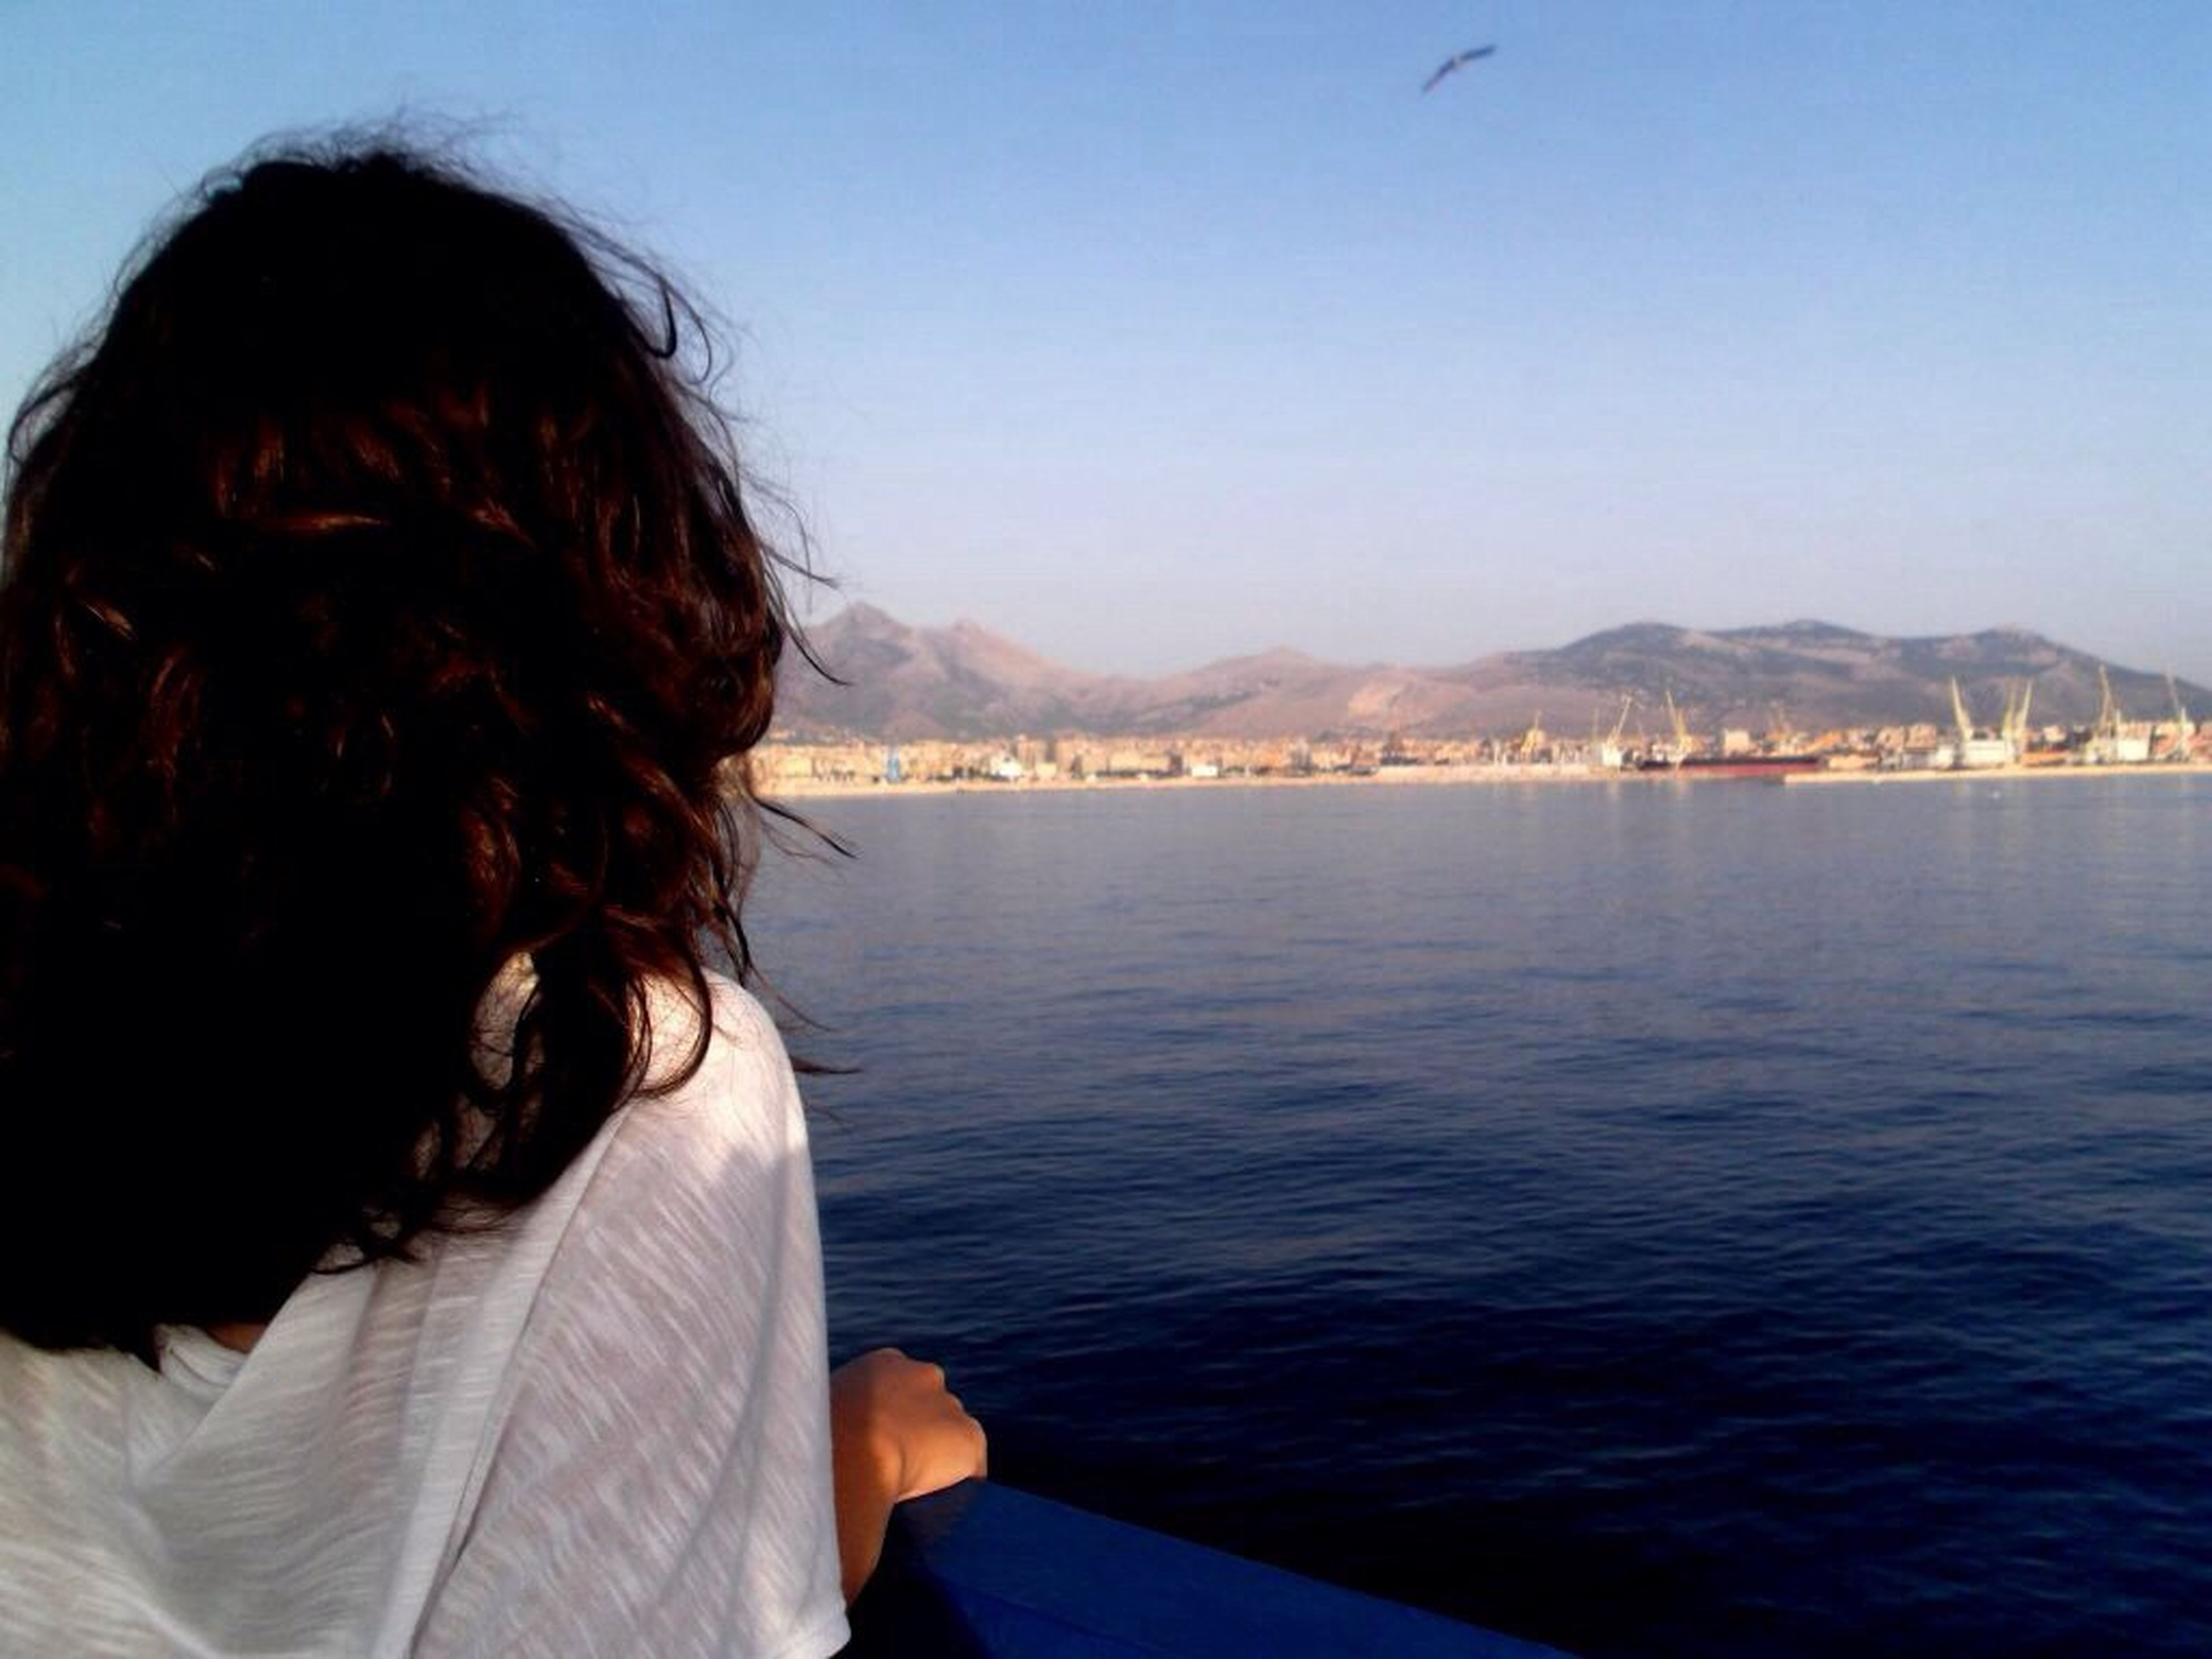 water, mountain, sea, leisure activity, lifestyles, clear sky, mountain range, rear view, scenics, sky, tranquility, nature, person, tranquil scene, beauty in nature, vacations, long hair, beach